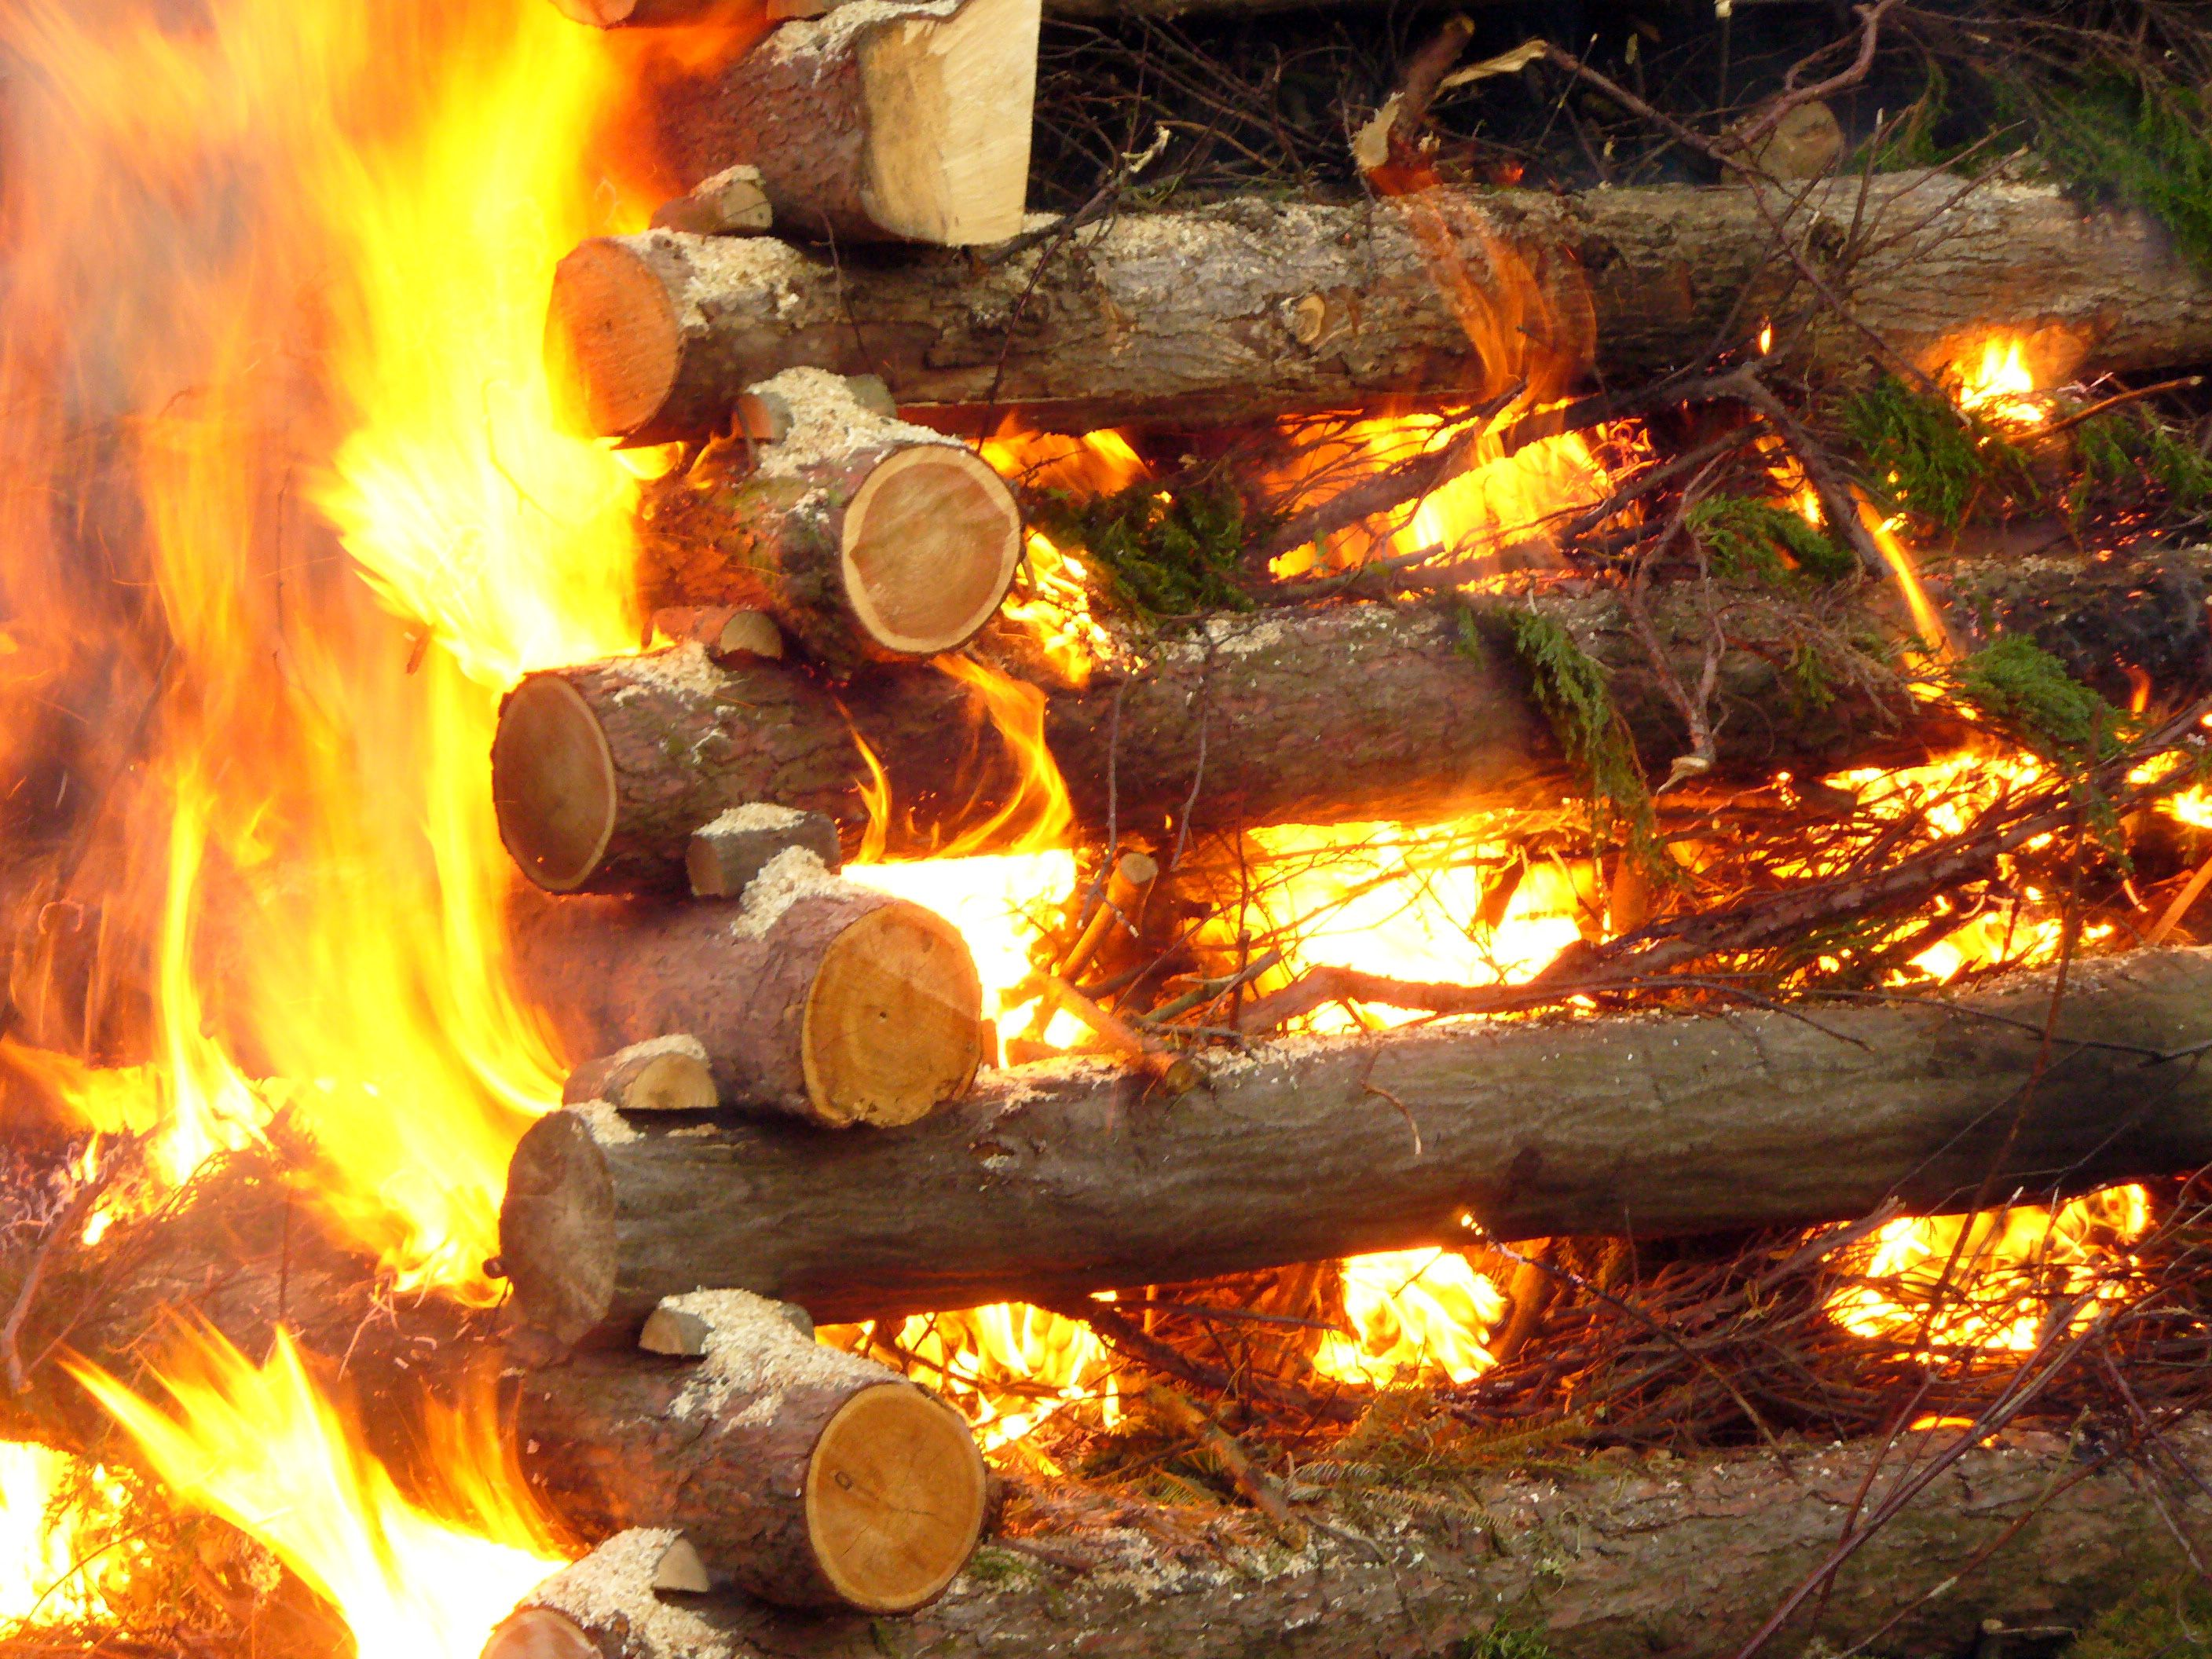 Free Image: Burning wood | Libreshot Public Domain Photos